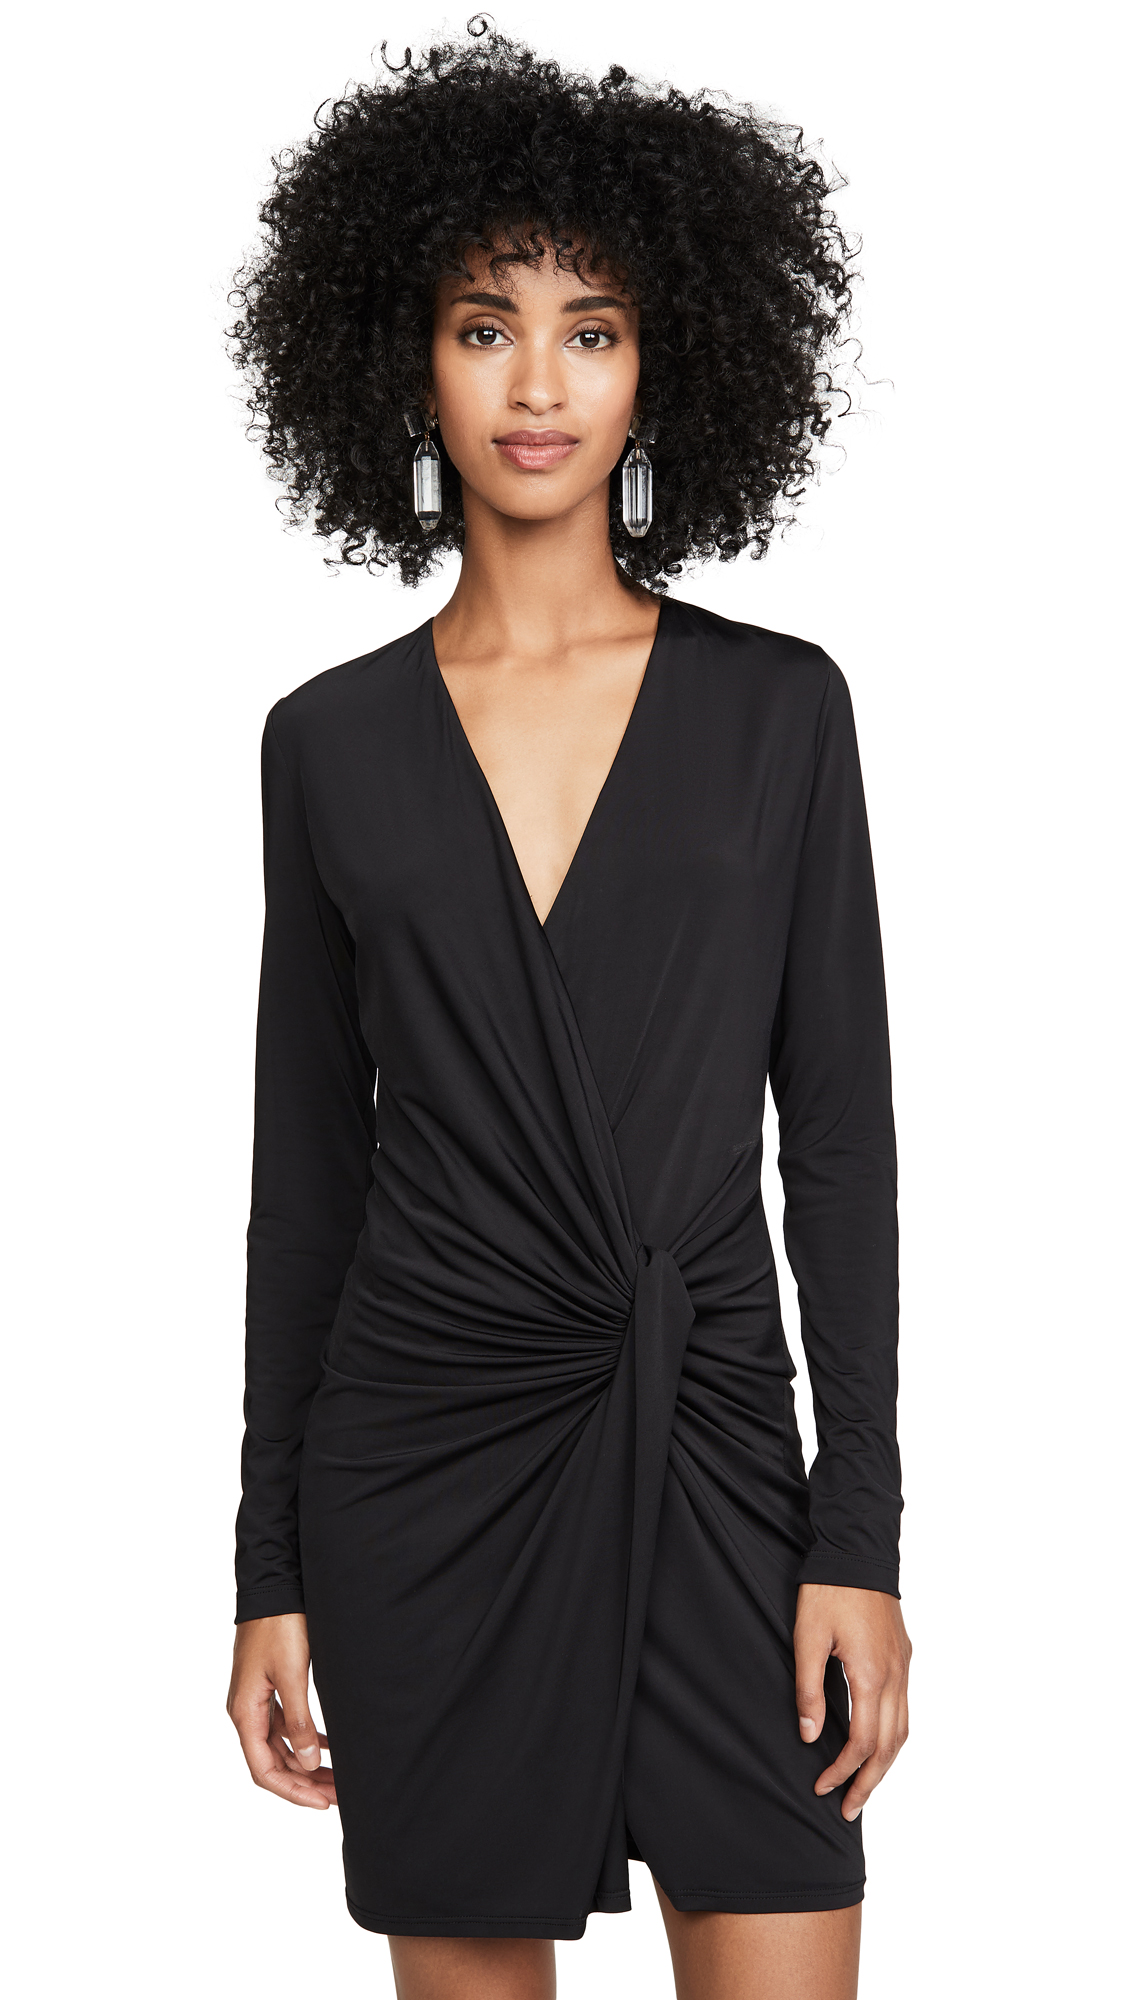 Black Halo Lara Mini Dress - 50% Off Sale